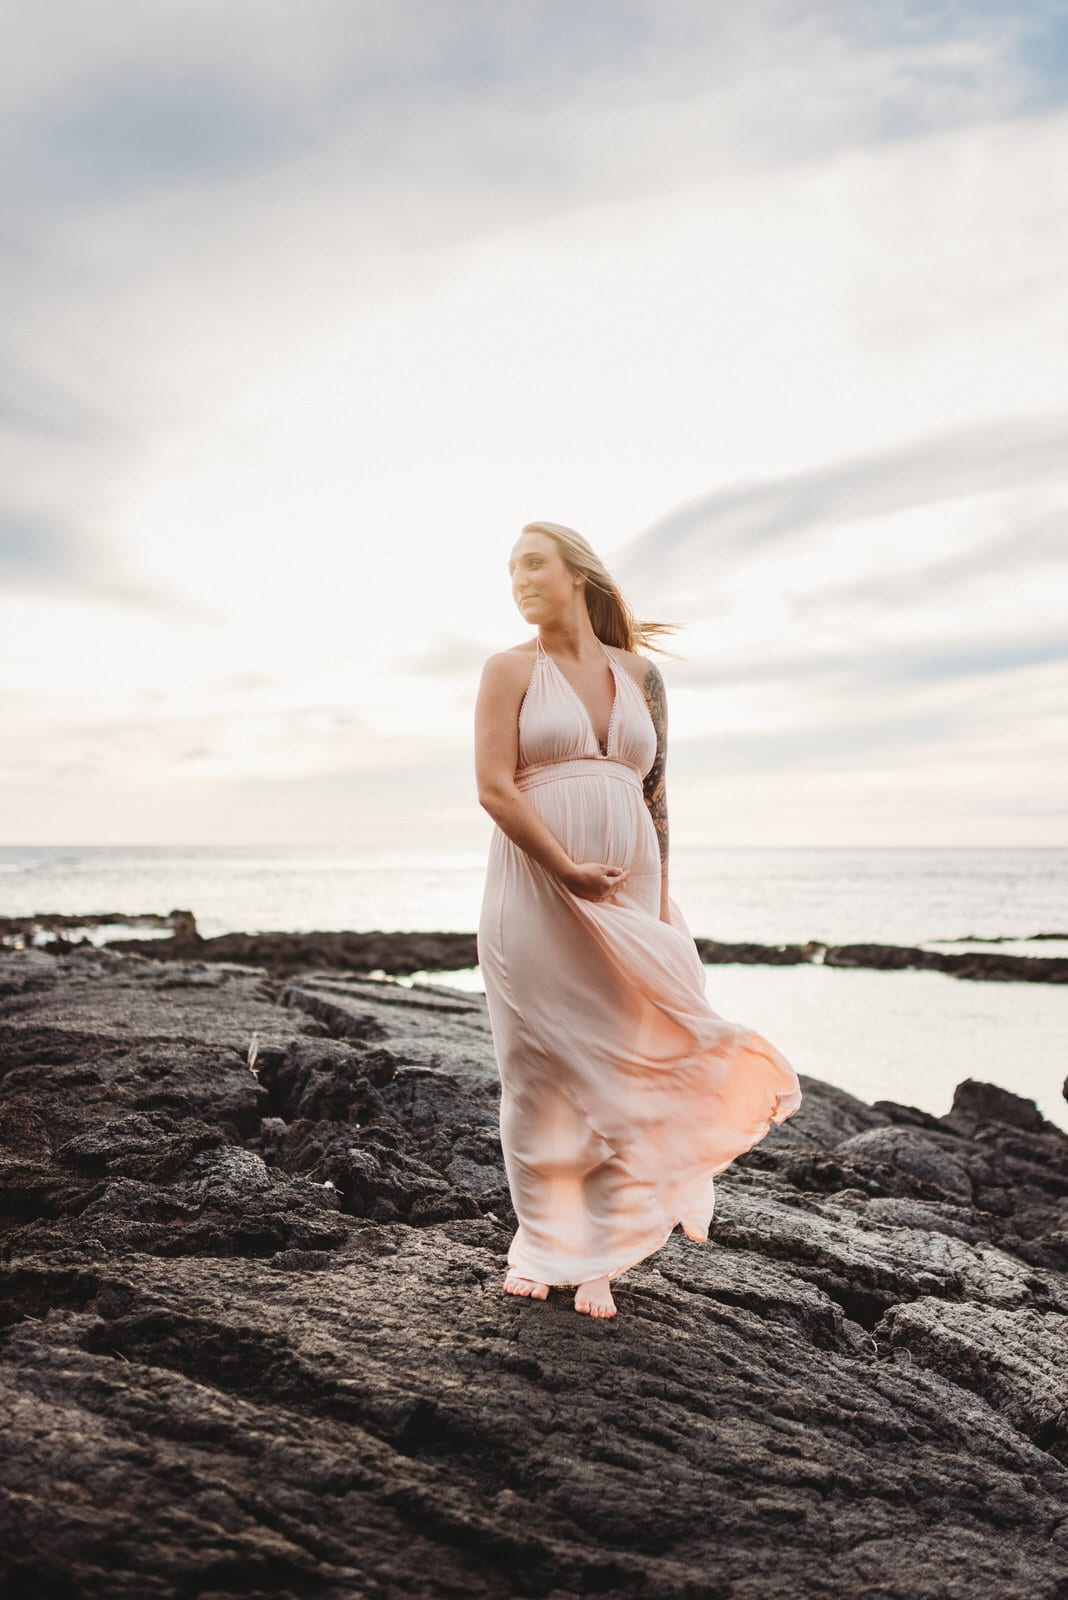 Big-Island-Photographer-Maternity-Babymoon-Hawaii-3.jpg